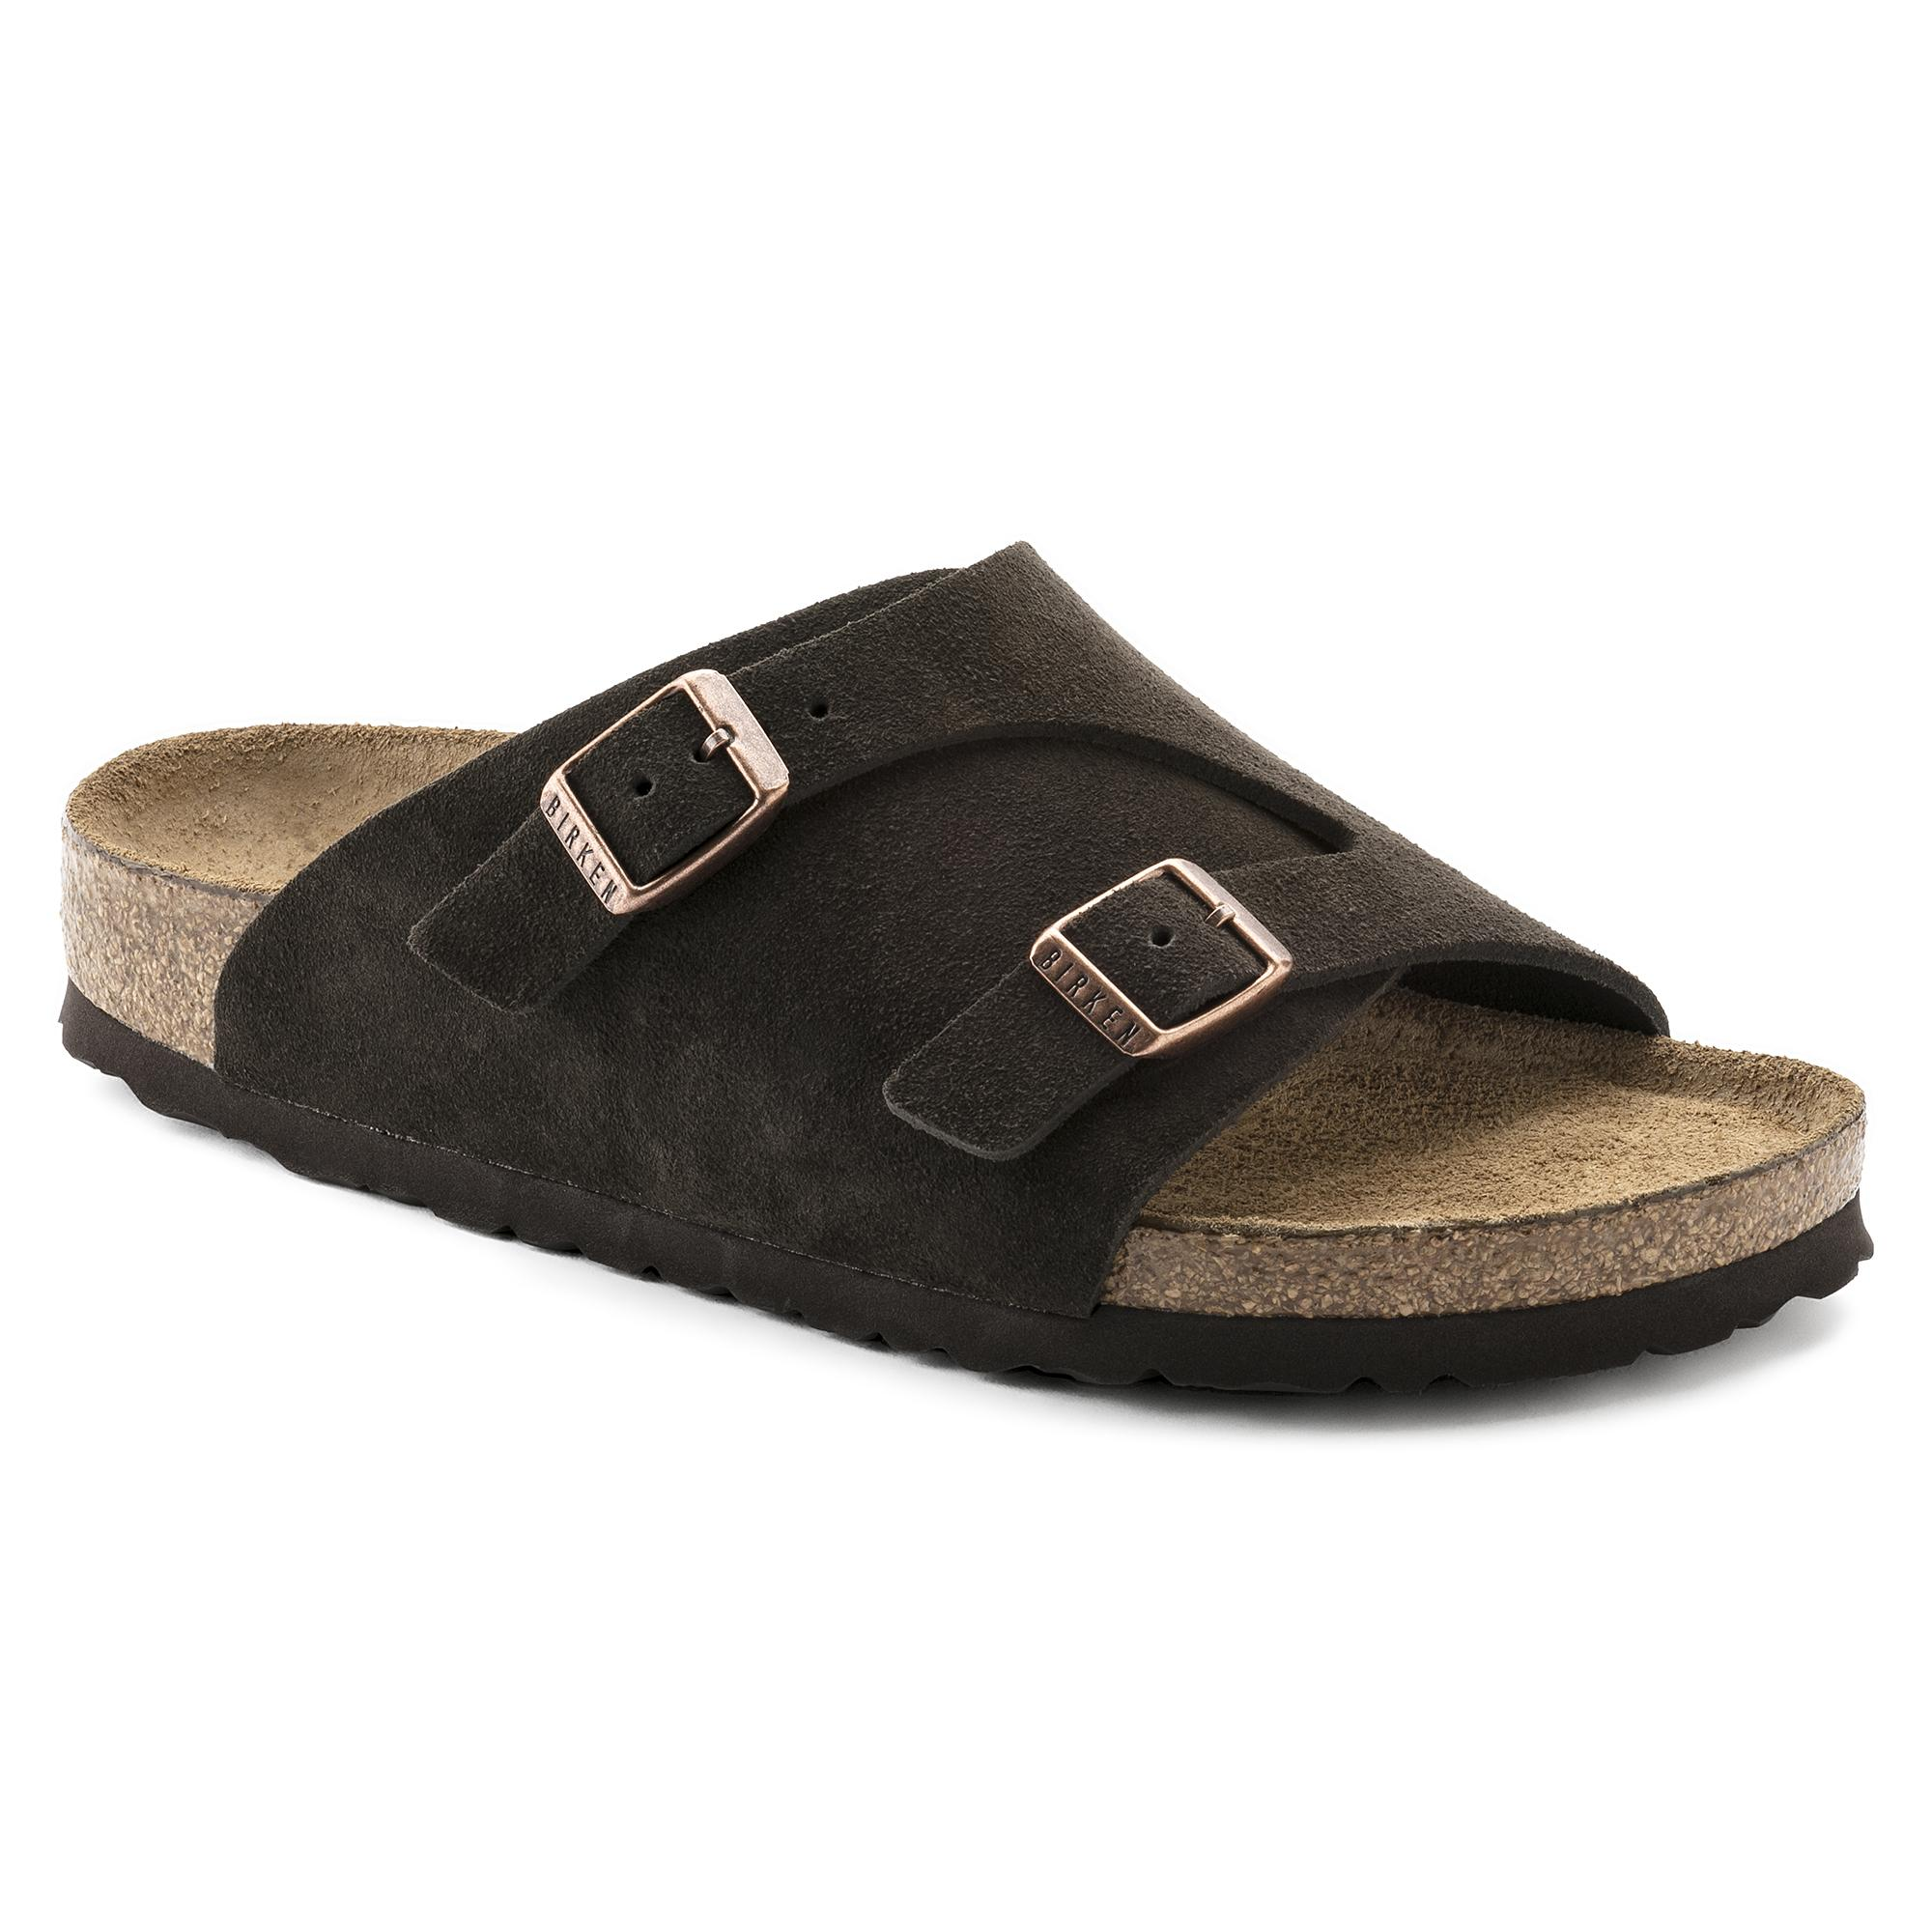 4e73635e0329 Birkenstocks Mens Zurich Soft Footbed Suede Leather Not Specified